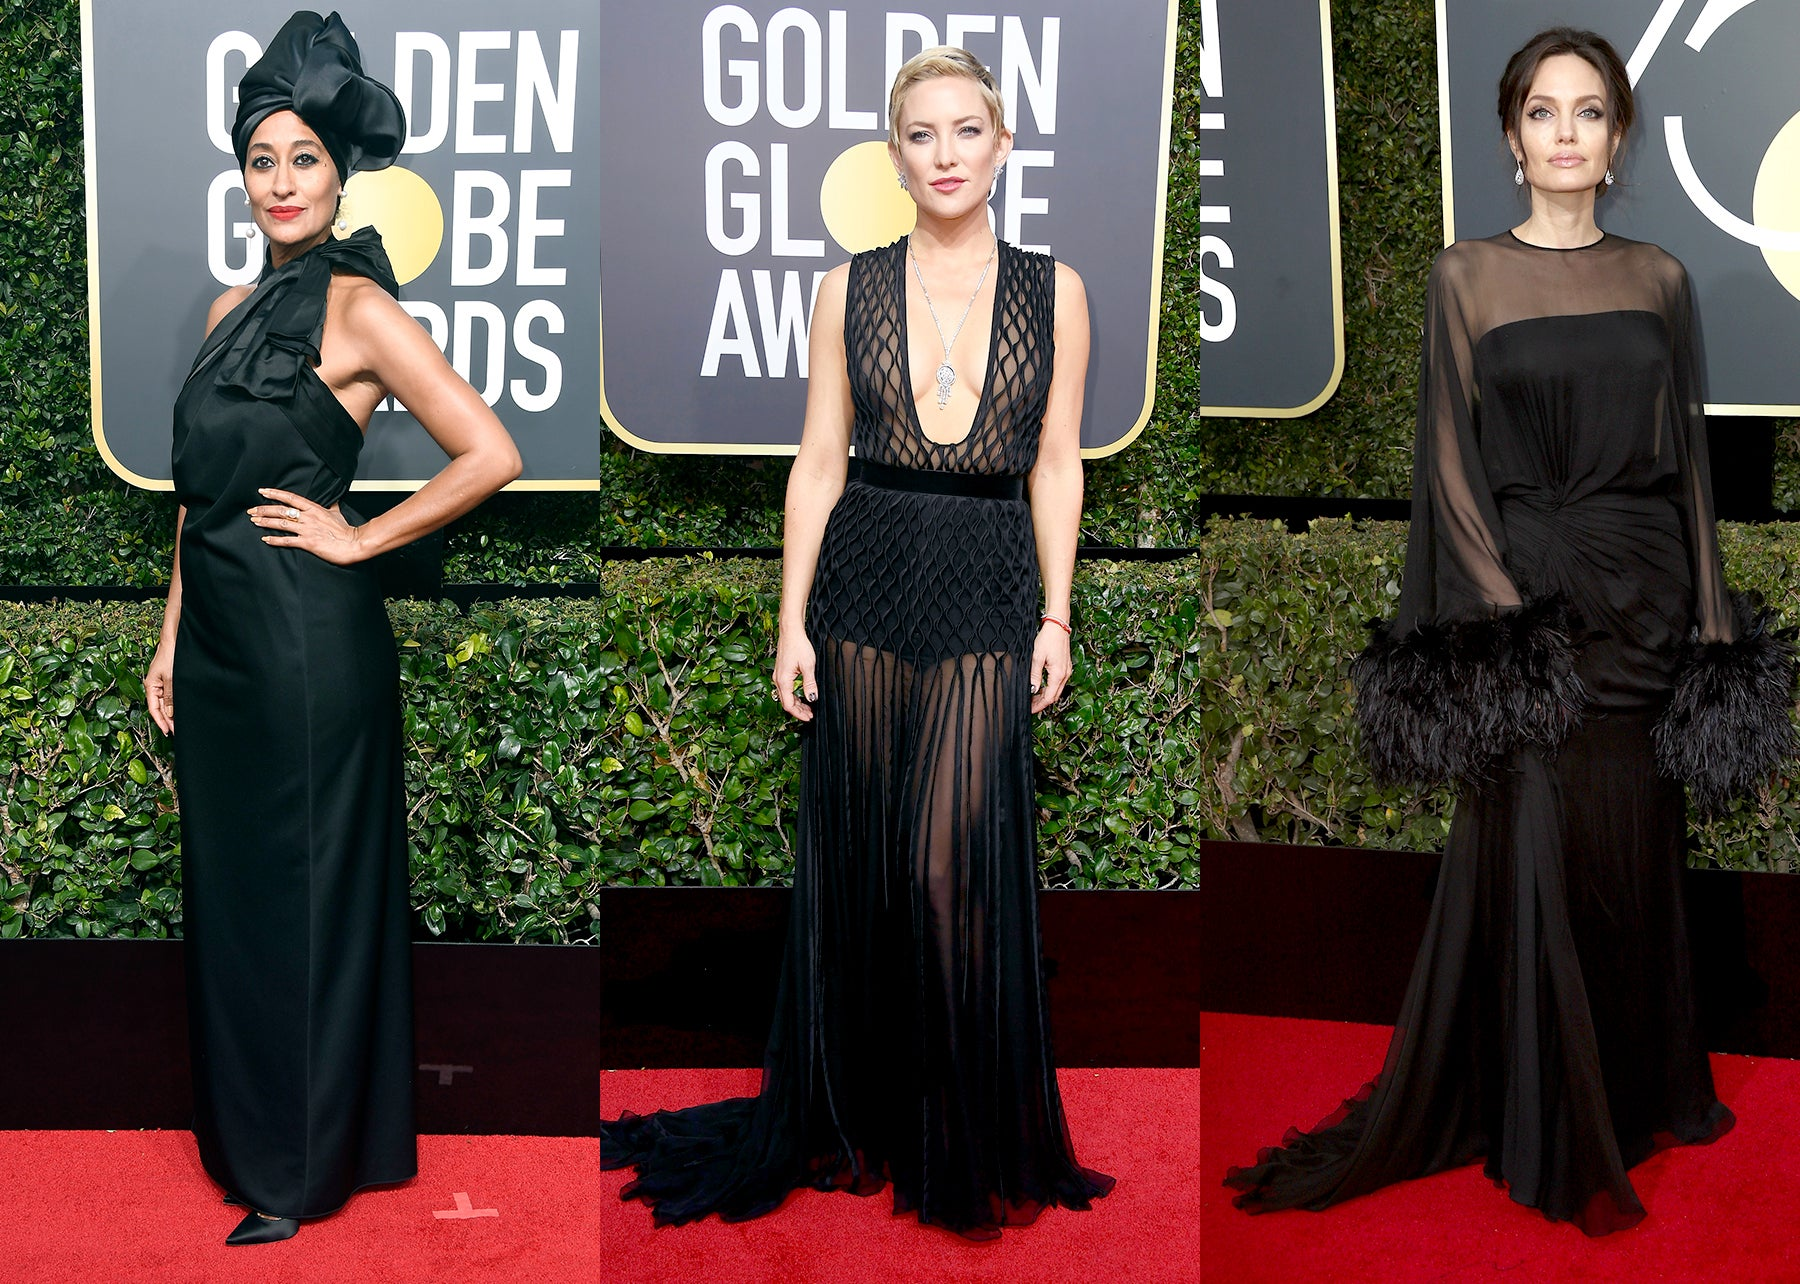 Tracee Ellis Ross, Kate Hudson, and Angelina Jolie.